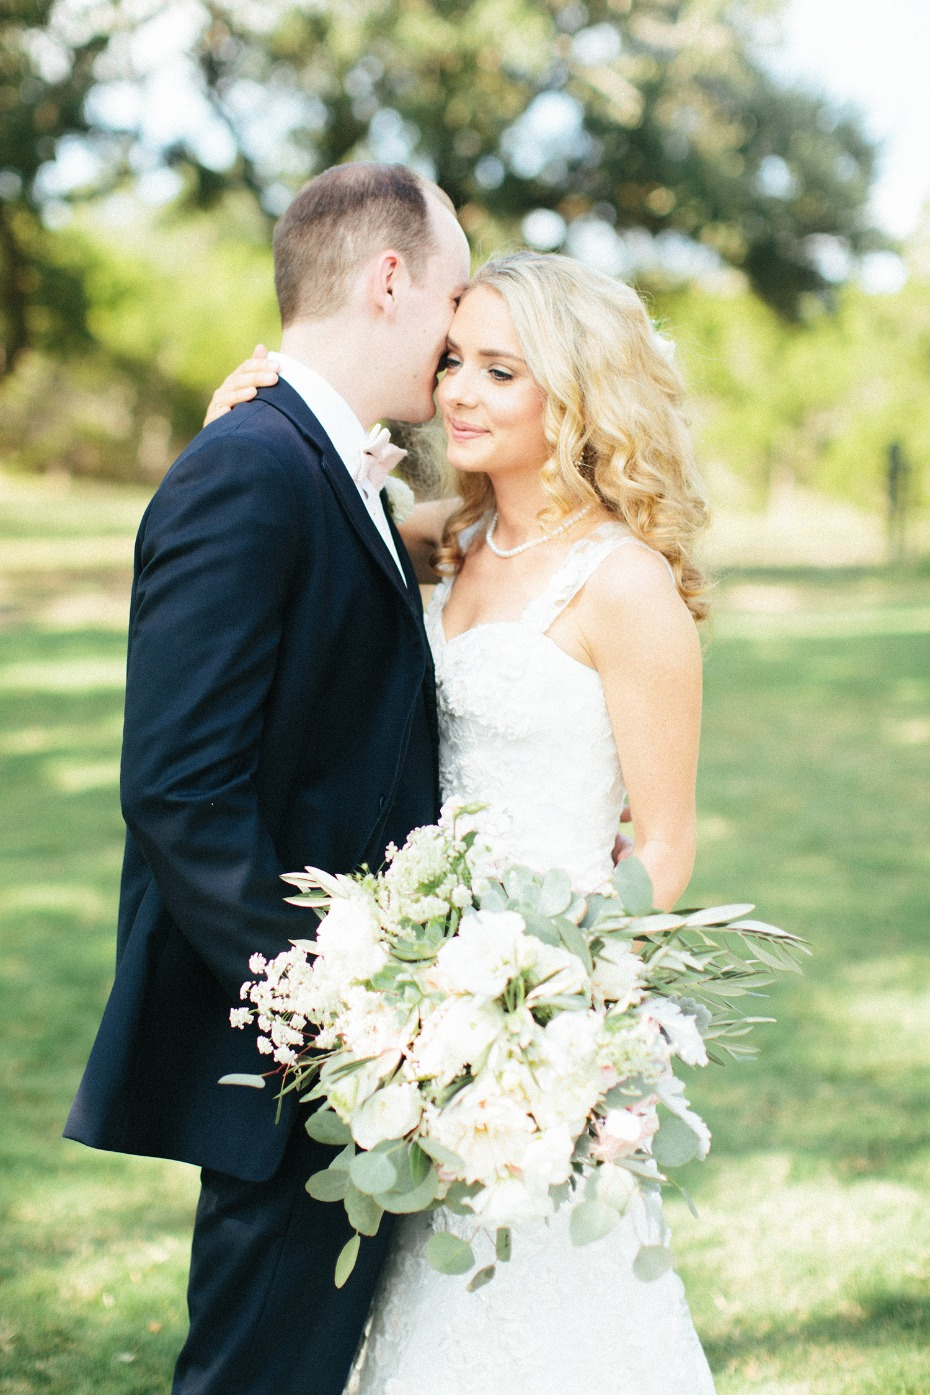 Dreamy garden wedding